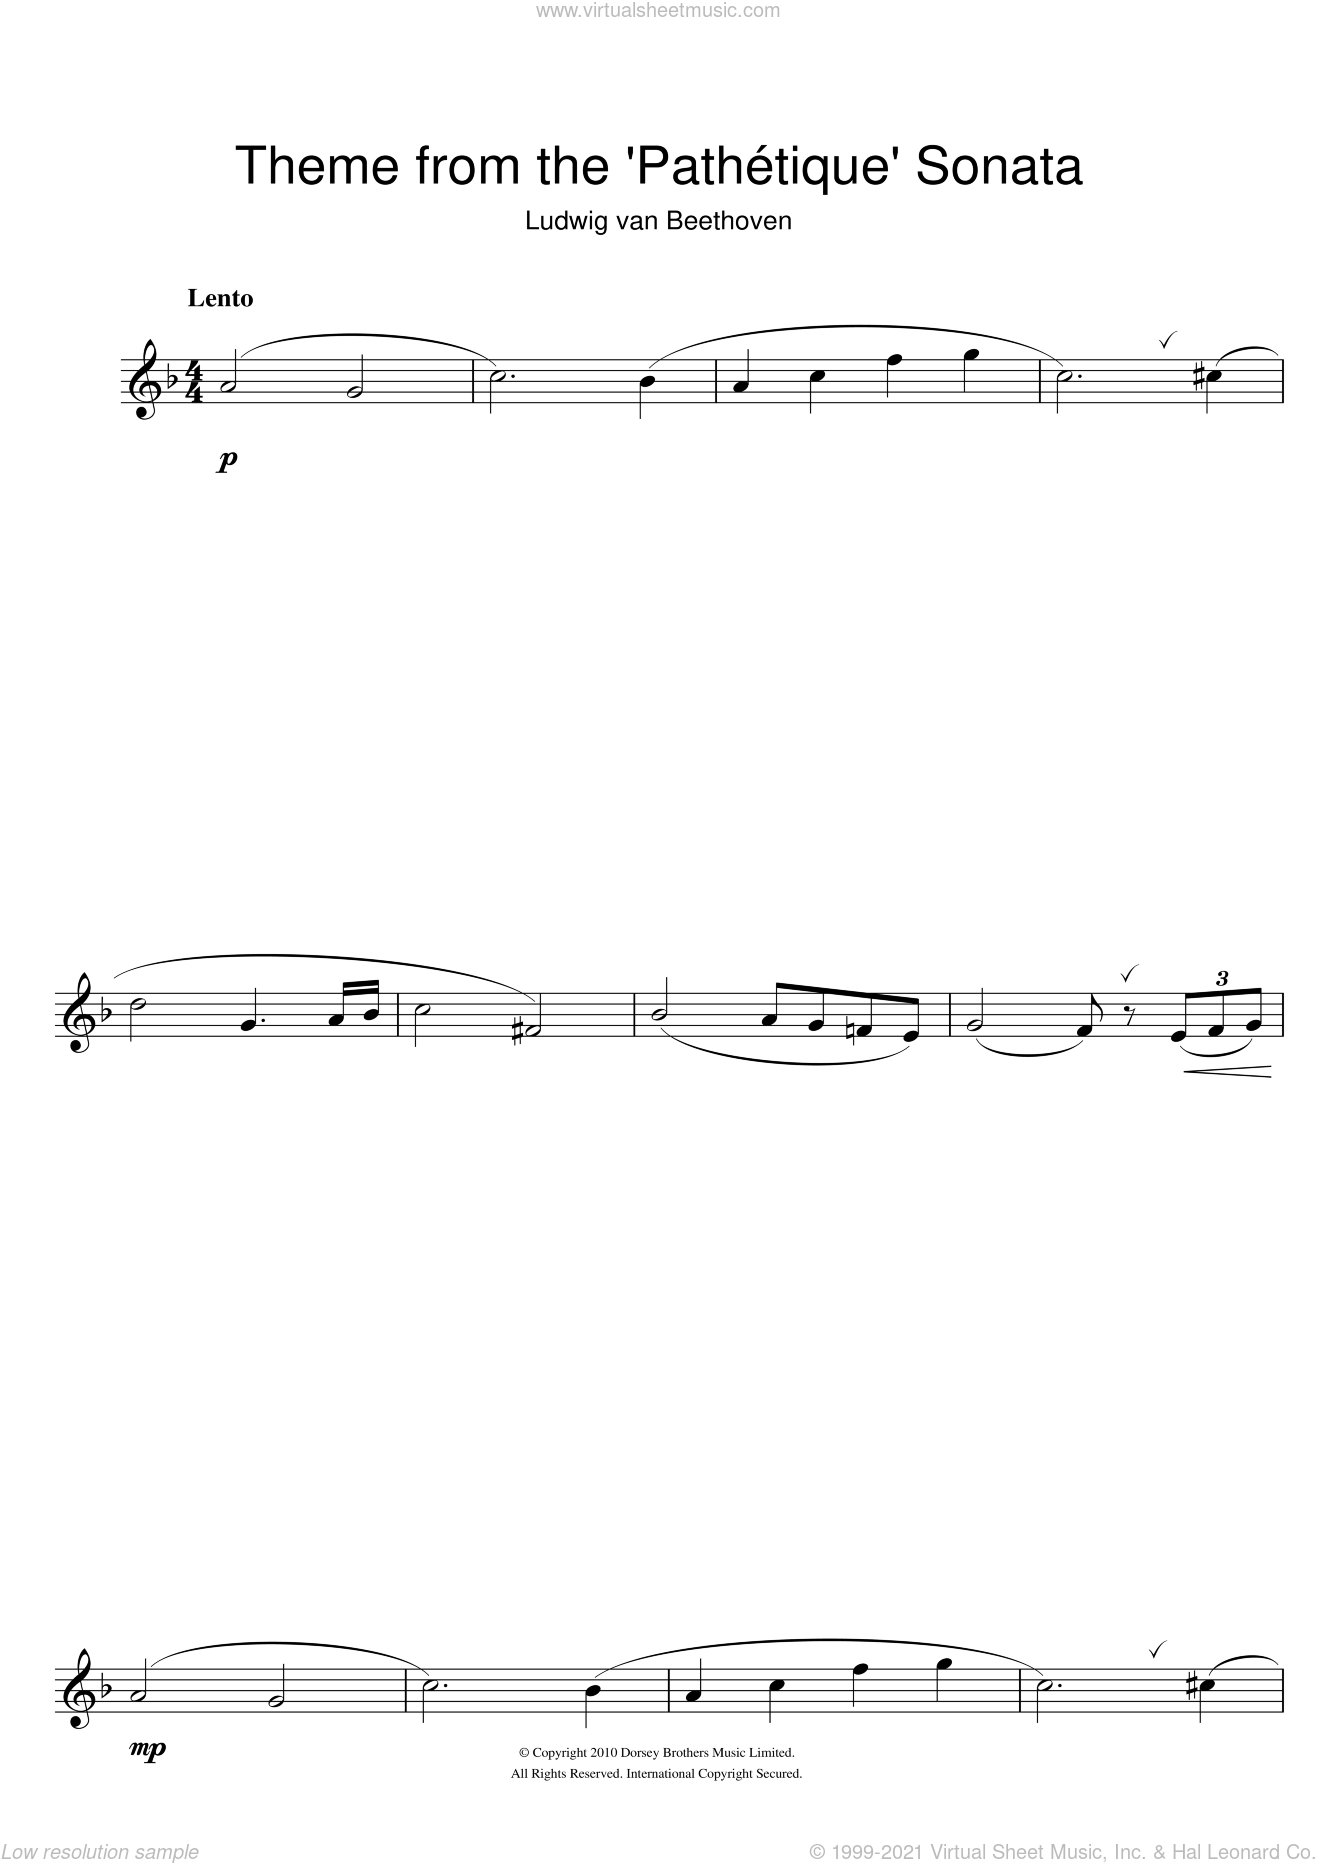 Theme from Pathetique Sonata sheet music for flute solo by Ludwig van Beethoven, classical score, intermediate skill level